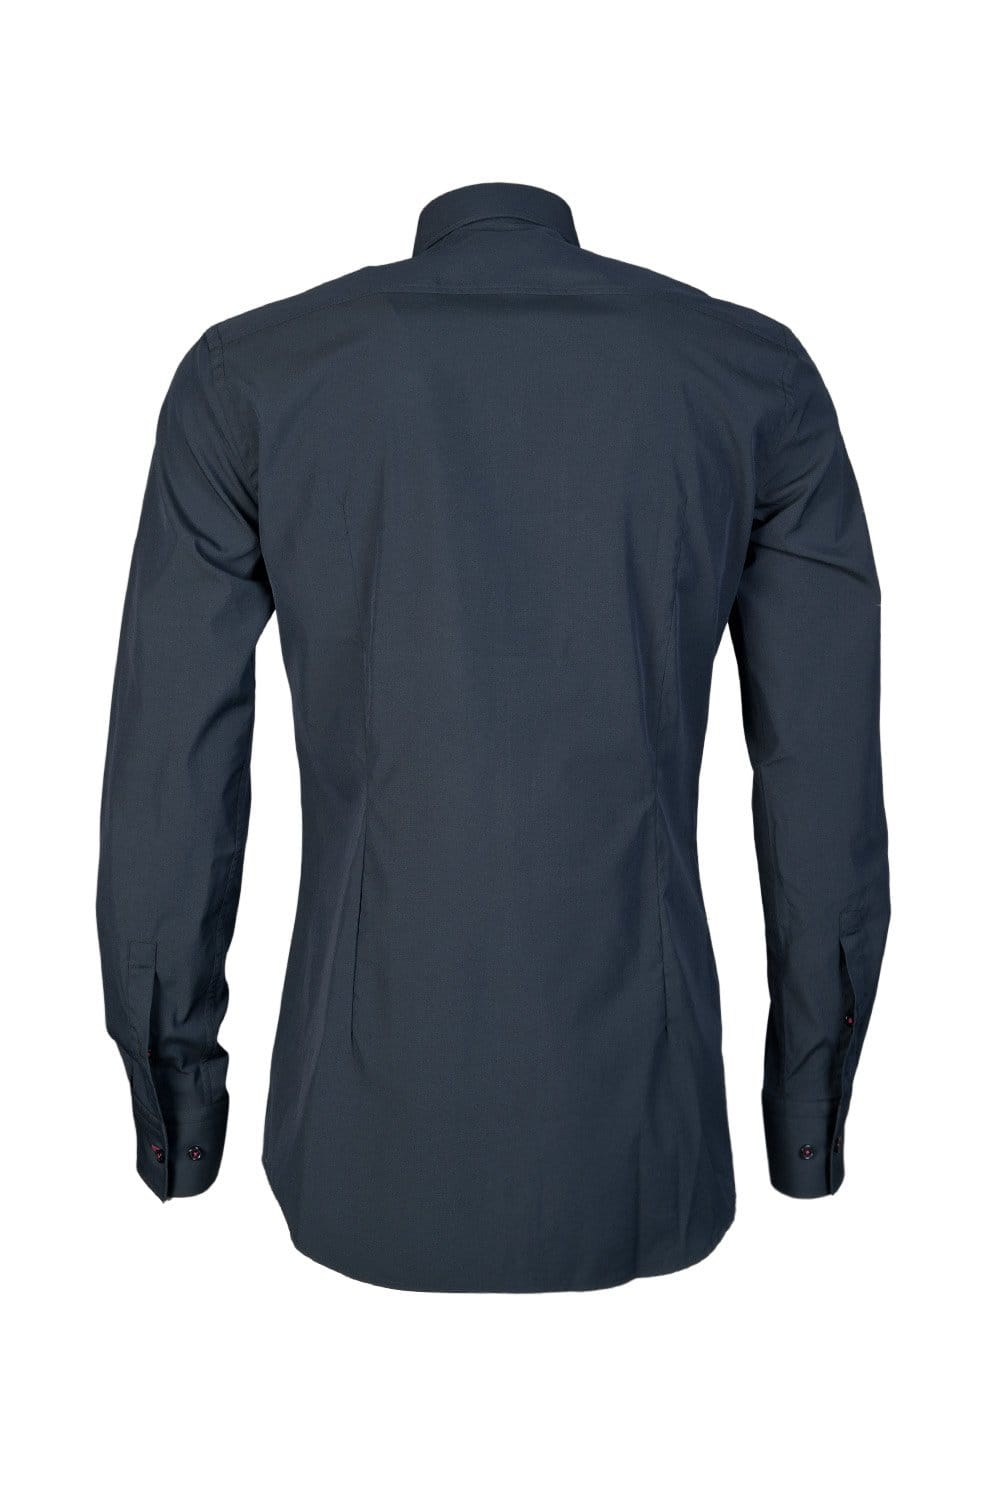 Hugo boss black long sleeve shirt in blue white and black for Blue and white long sleeve shirt